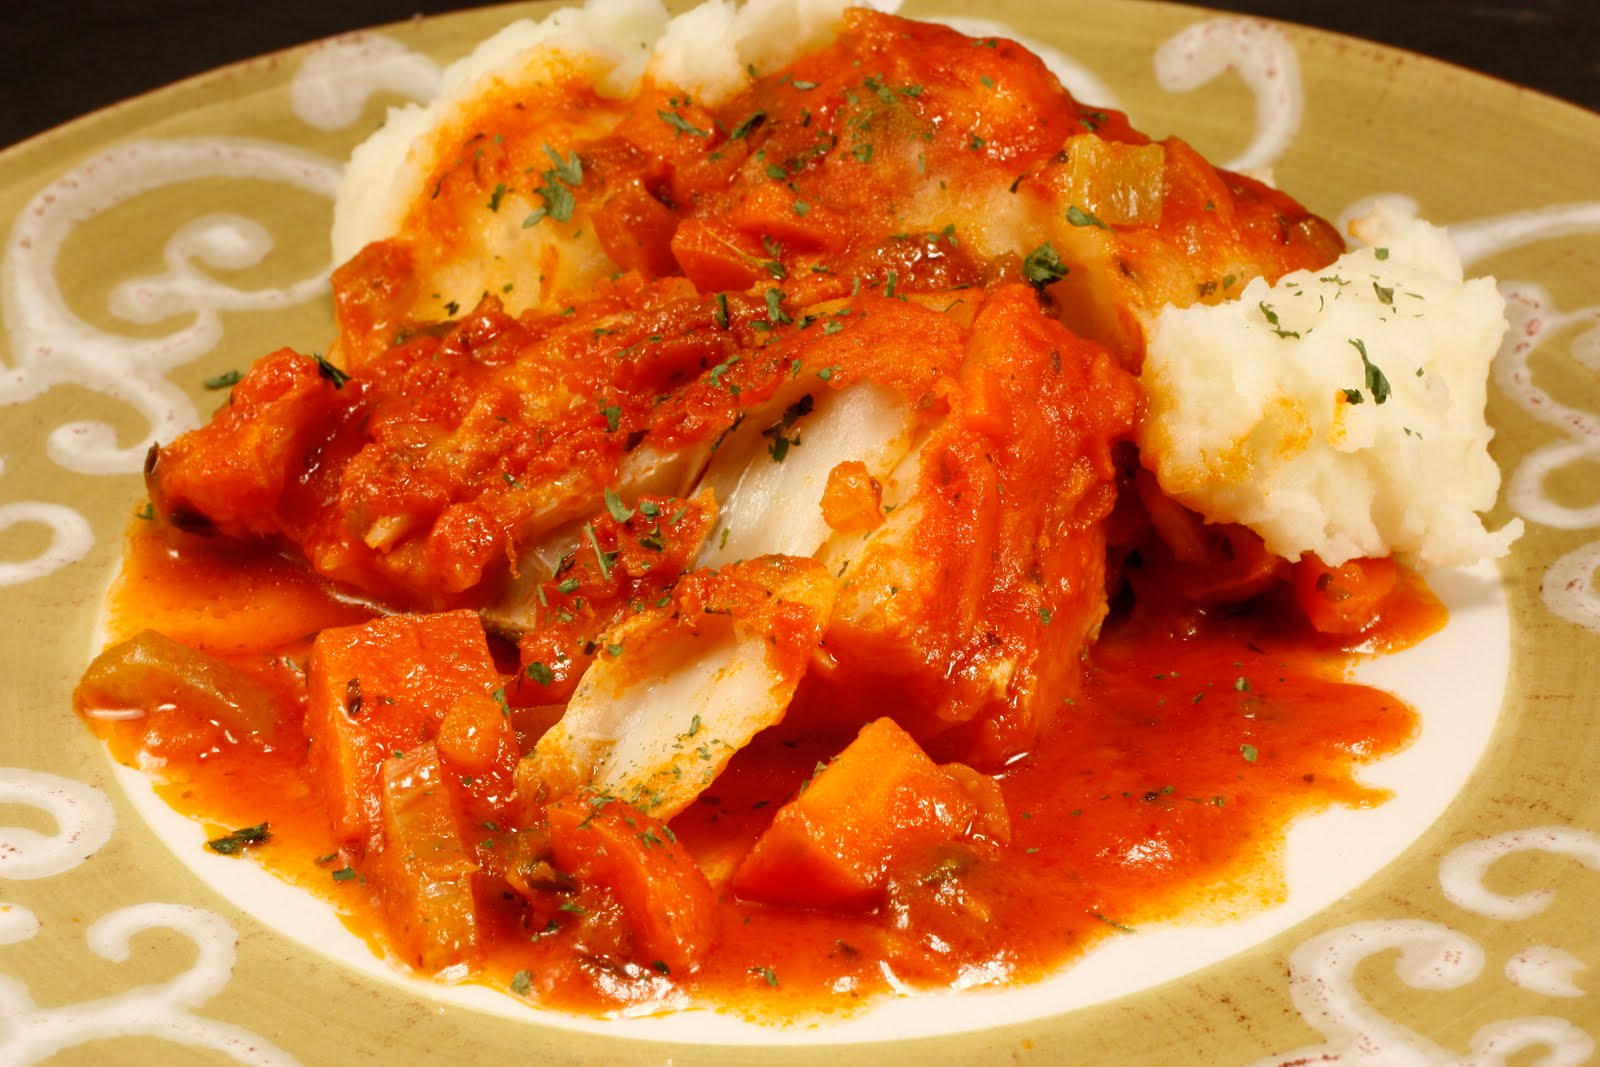 Chef Chuck's Cucina: Chef Chuck's Salted Cod with Tomatoes